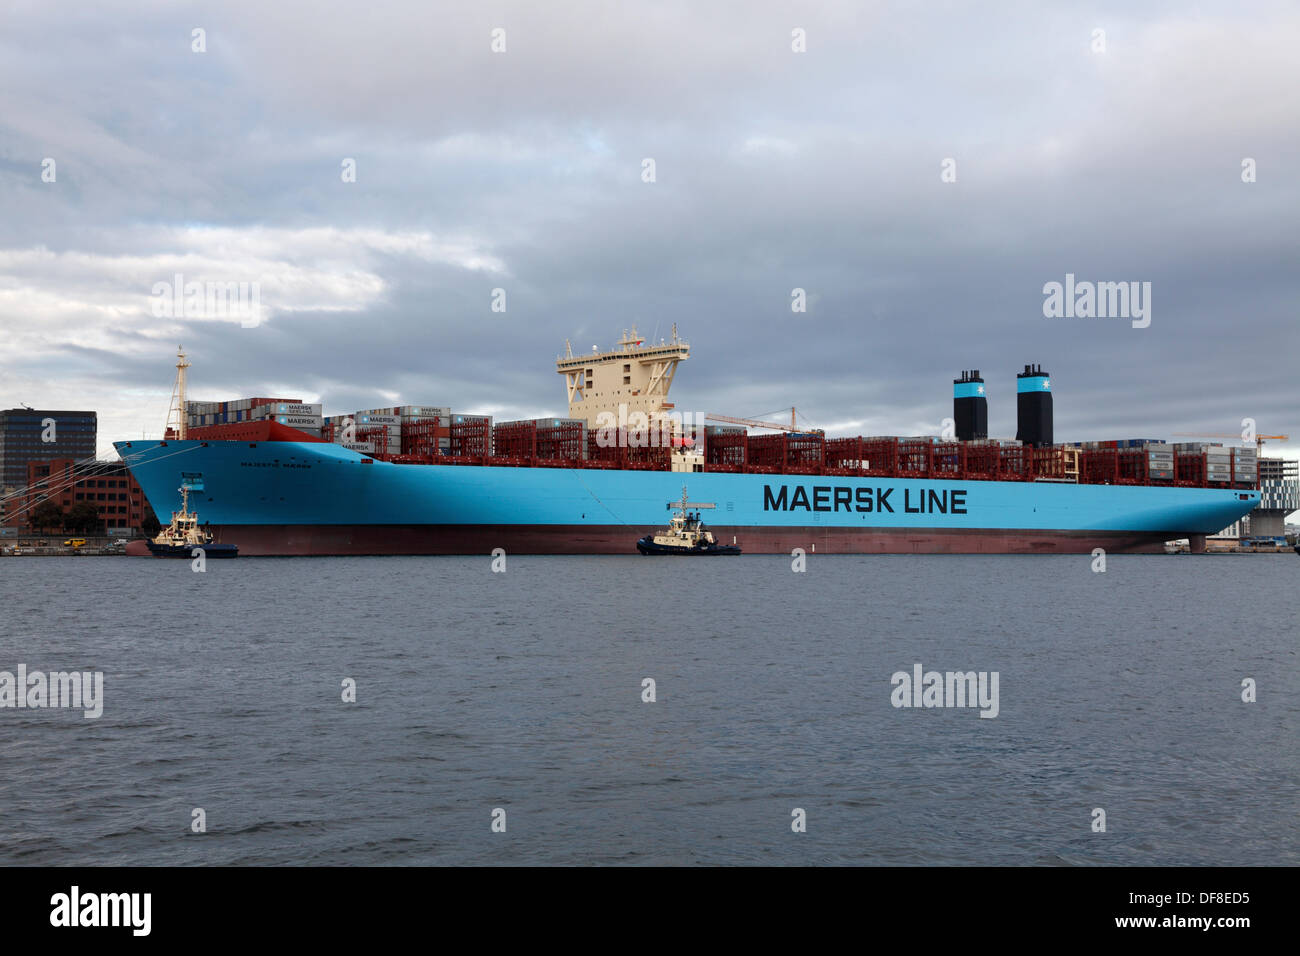 Copenhagen, Denmark. 30th Sep, 2013. The Majestic Maersk left the Langelinie quay in Copenhagen after one week's official naming ceremony and presentation to Maersk relations and the Danish public. Majestic Maersk, now heading for Gothenburg in Sweden to enter the container service between Europe and Asia, will probably never visit Copenhagen again as it is off-route and not suitable for this size of ship. By help of own propellers and four Svitzer tugs the ship was backed out of the harbour, as it is too shallow and small for a triple-E class ship to turn. Credit:  Niels Quist/Alamy Live News - Stock Image